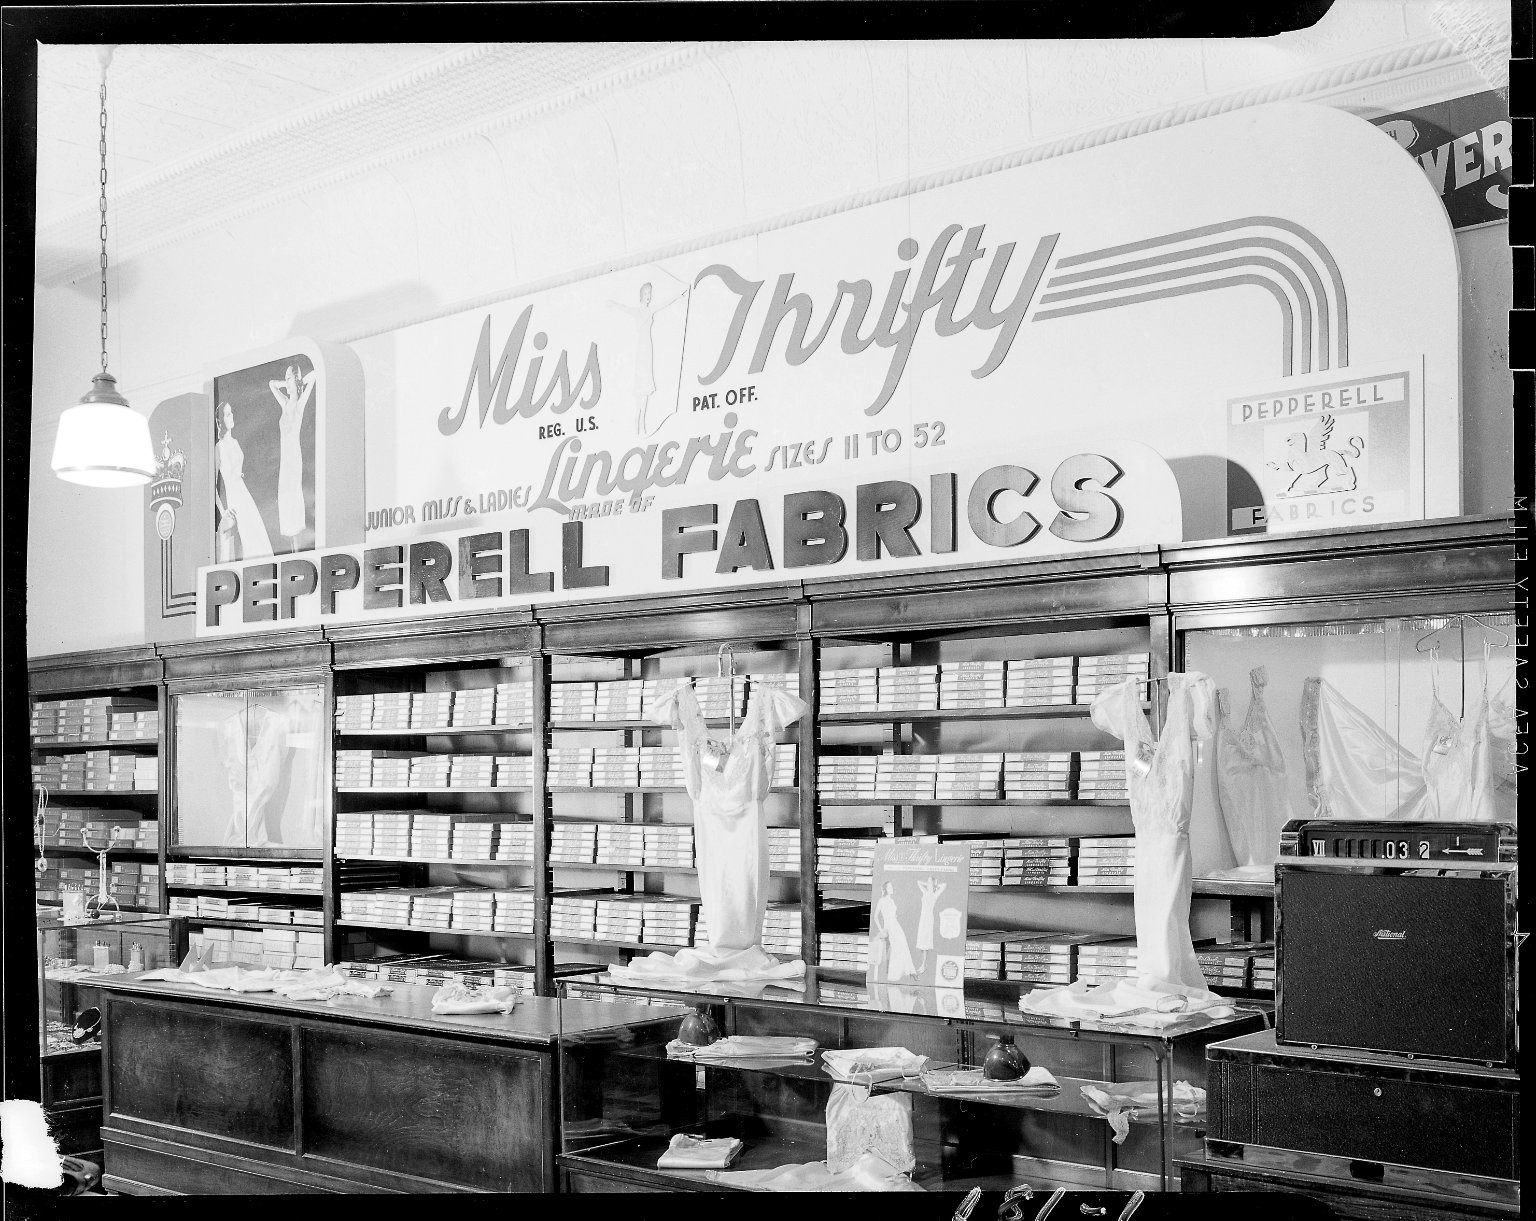 Power's Department Store, Miss Thrifty Lingerie display